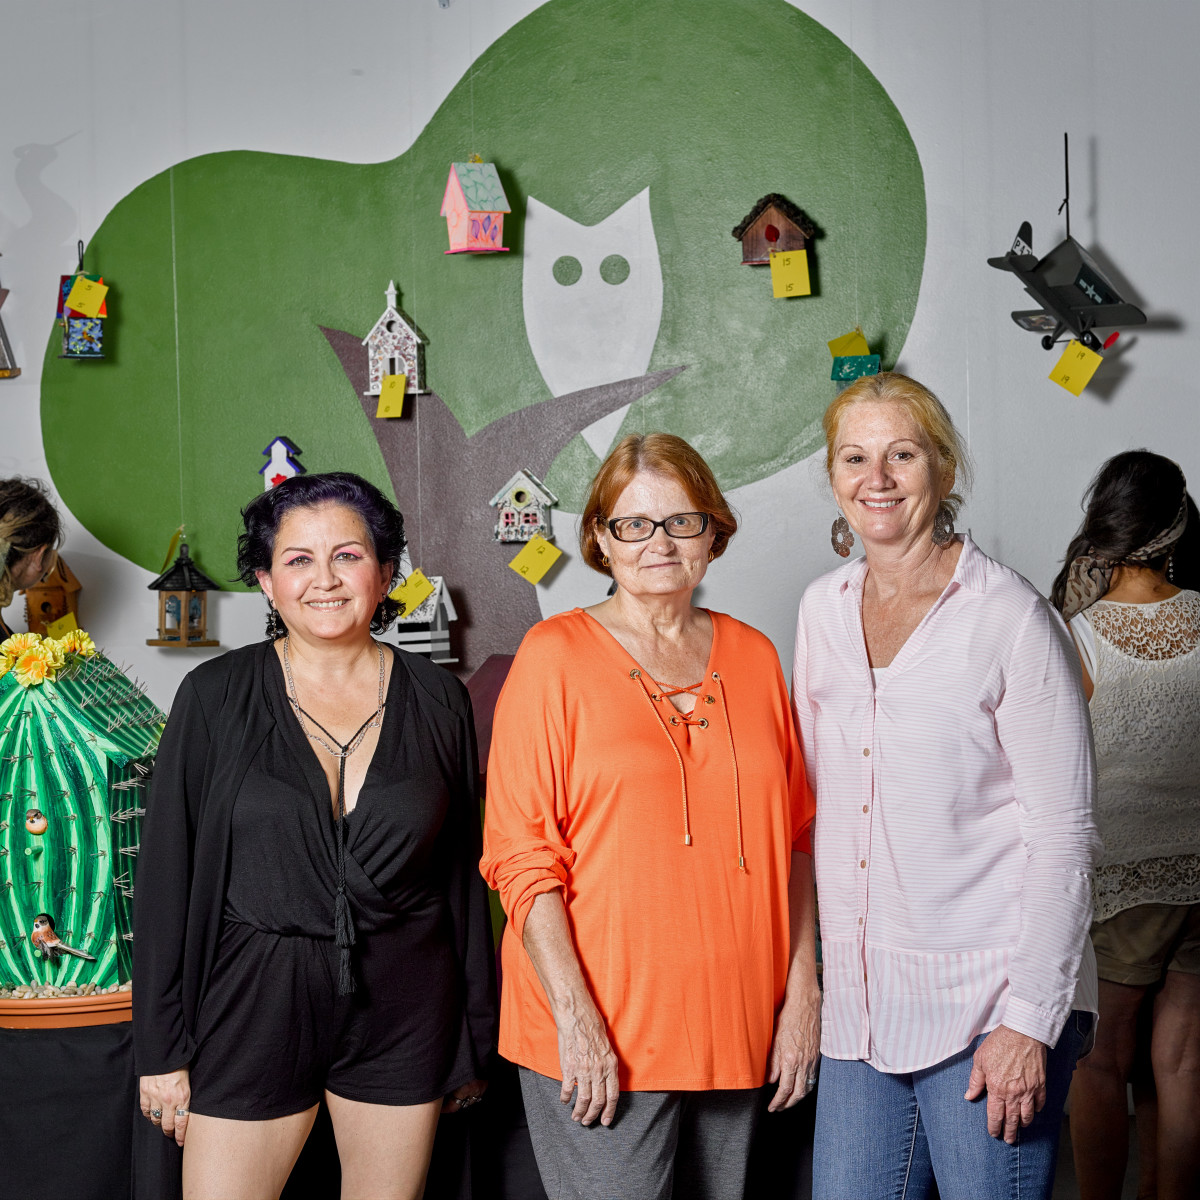 Event chairs Monica Melgar, Janet Roe with Houston Arboretum director Debbie Markey at Sawyer Yards Artist Stroll